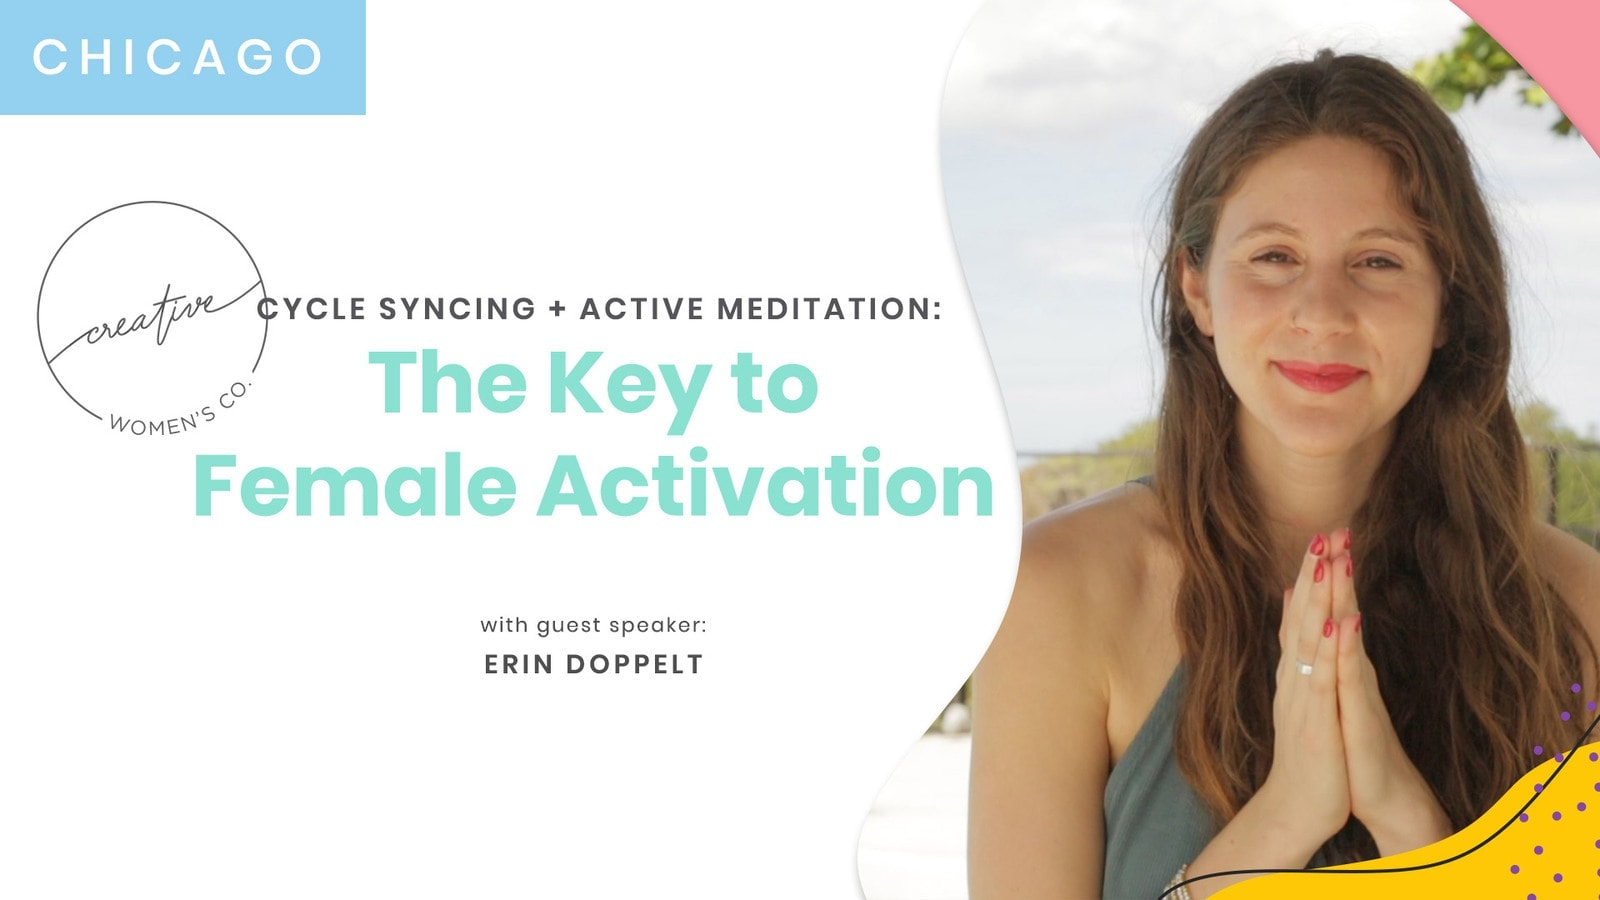 Chicago The Key To Female Activation